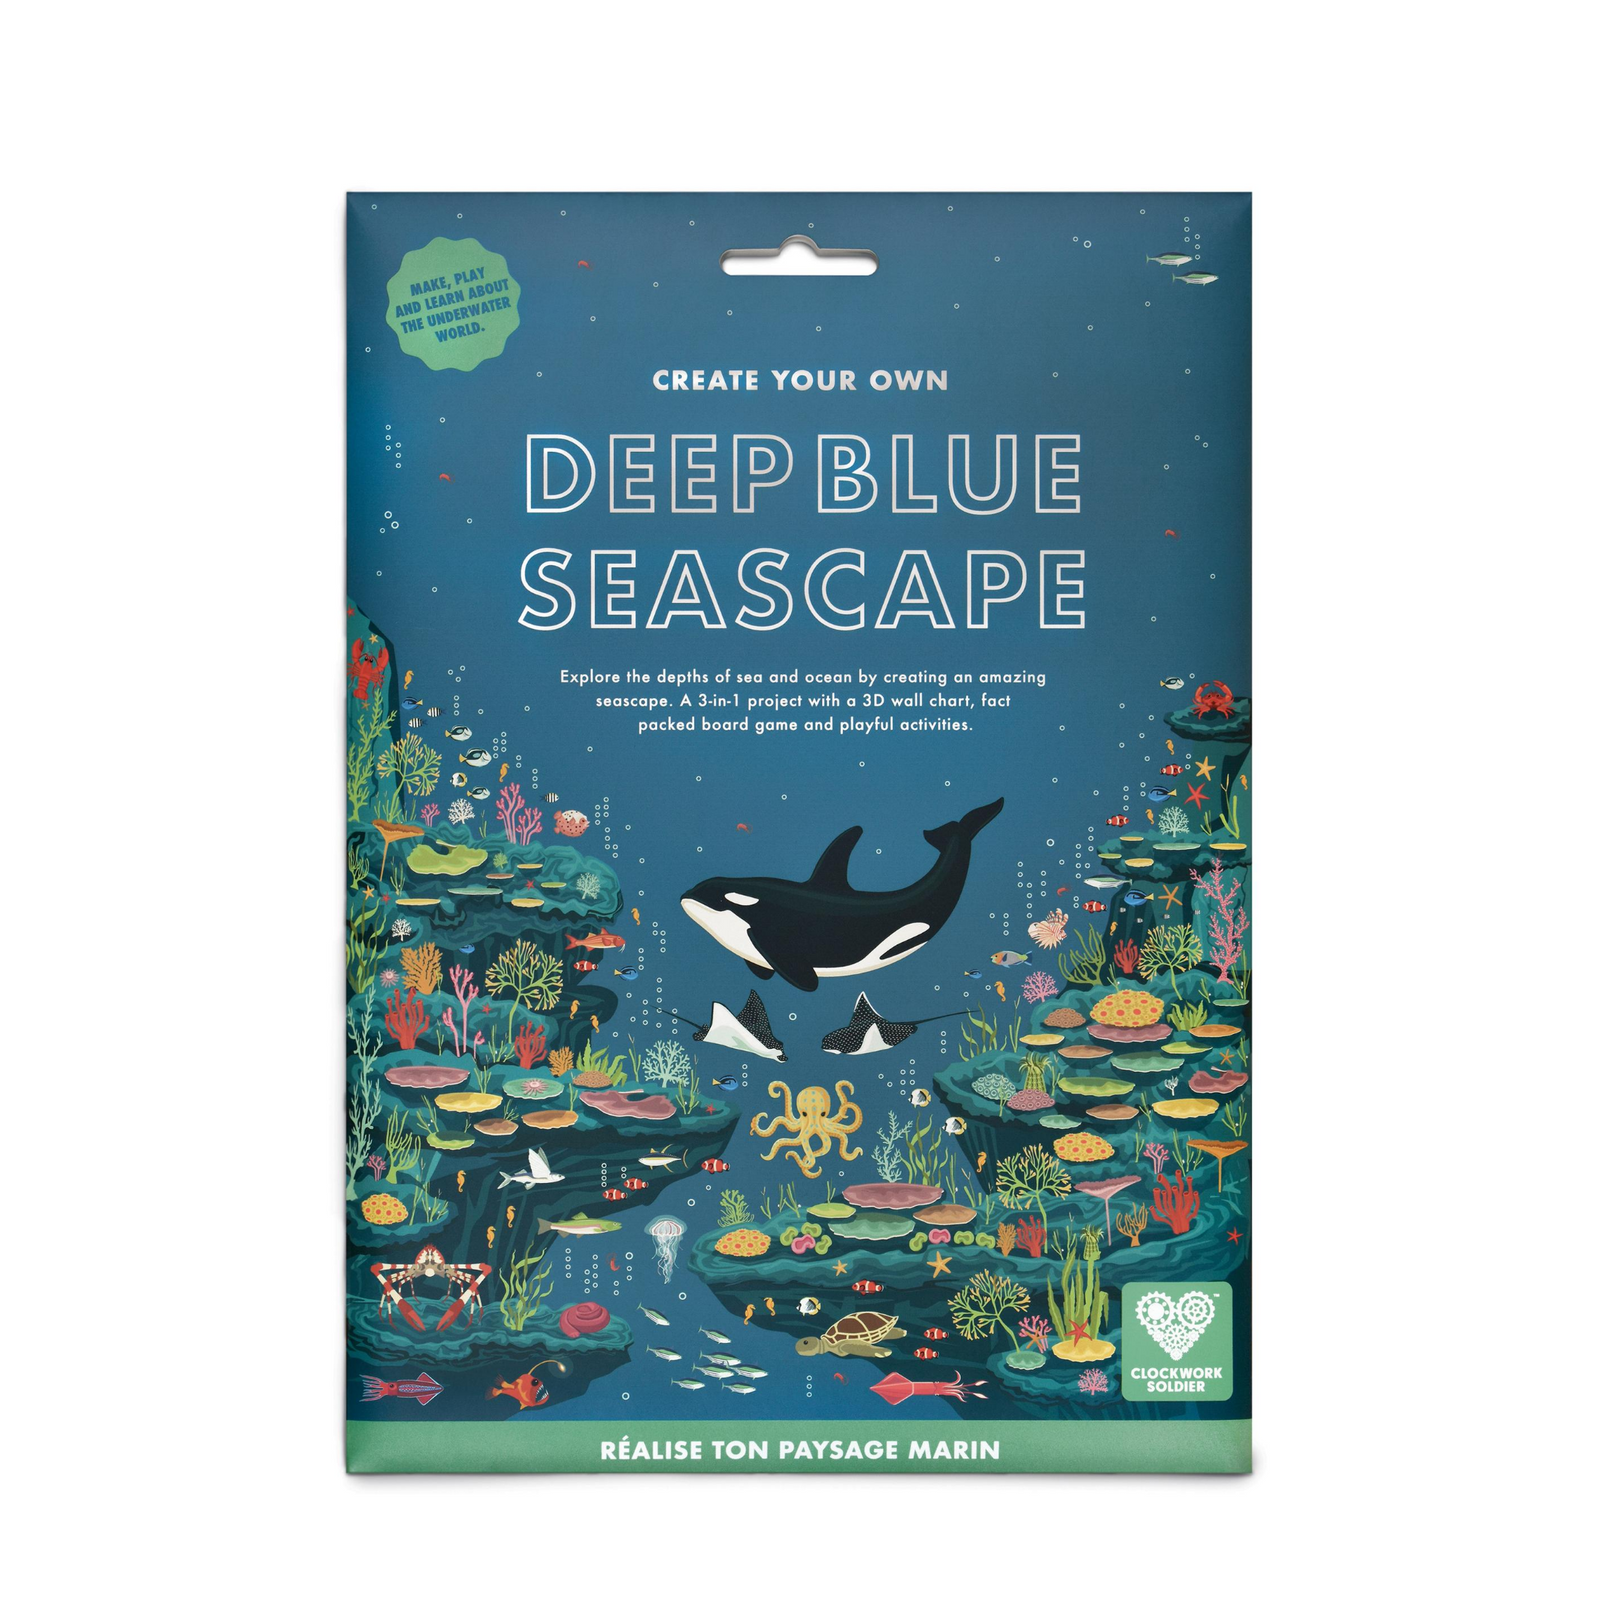 Create Your Own Deep Blue Seascape from Clockwork Soldier